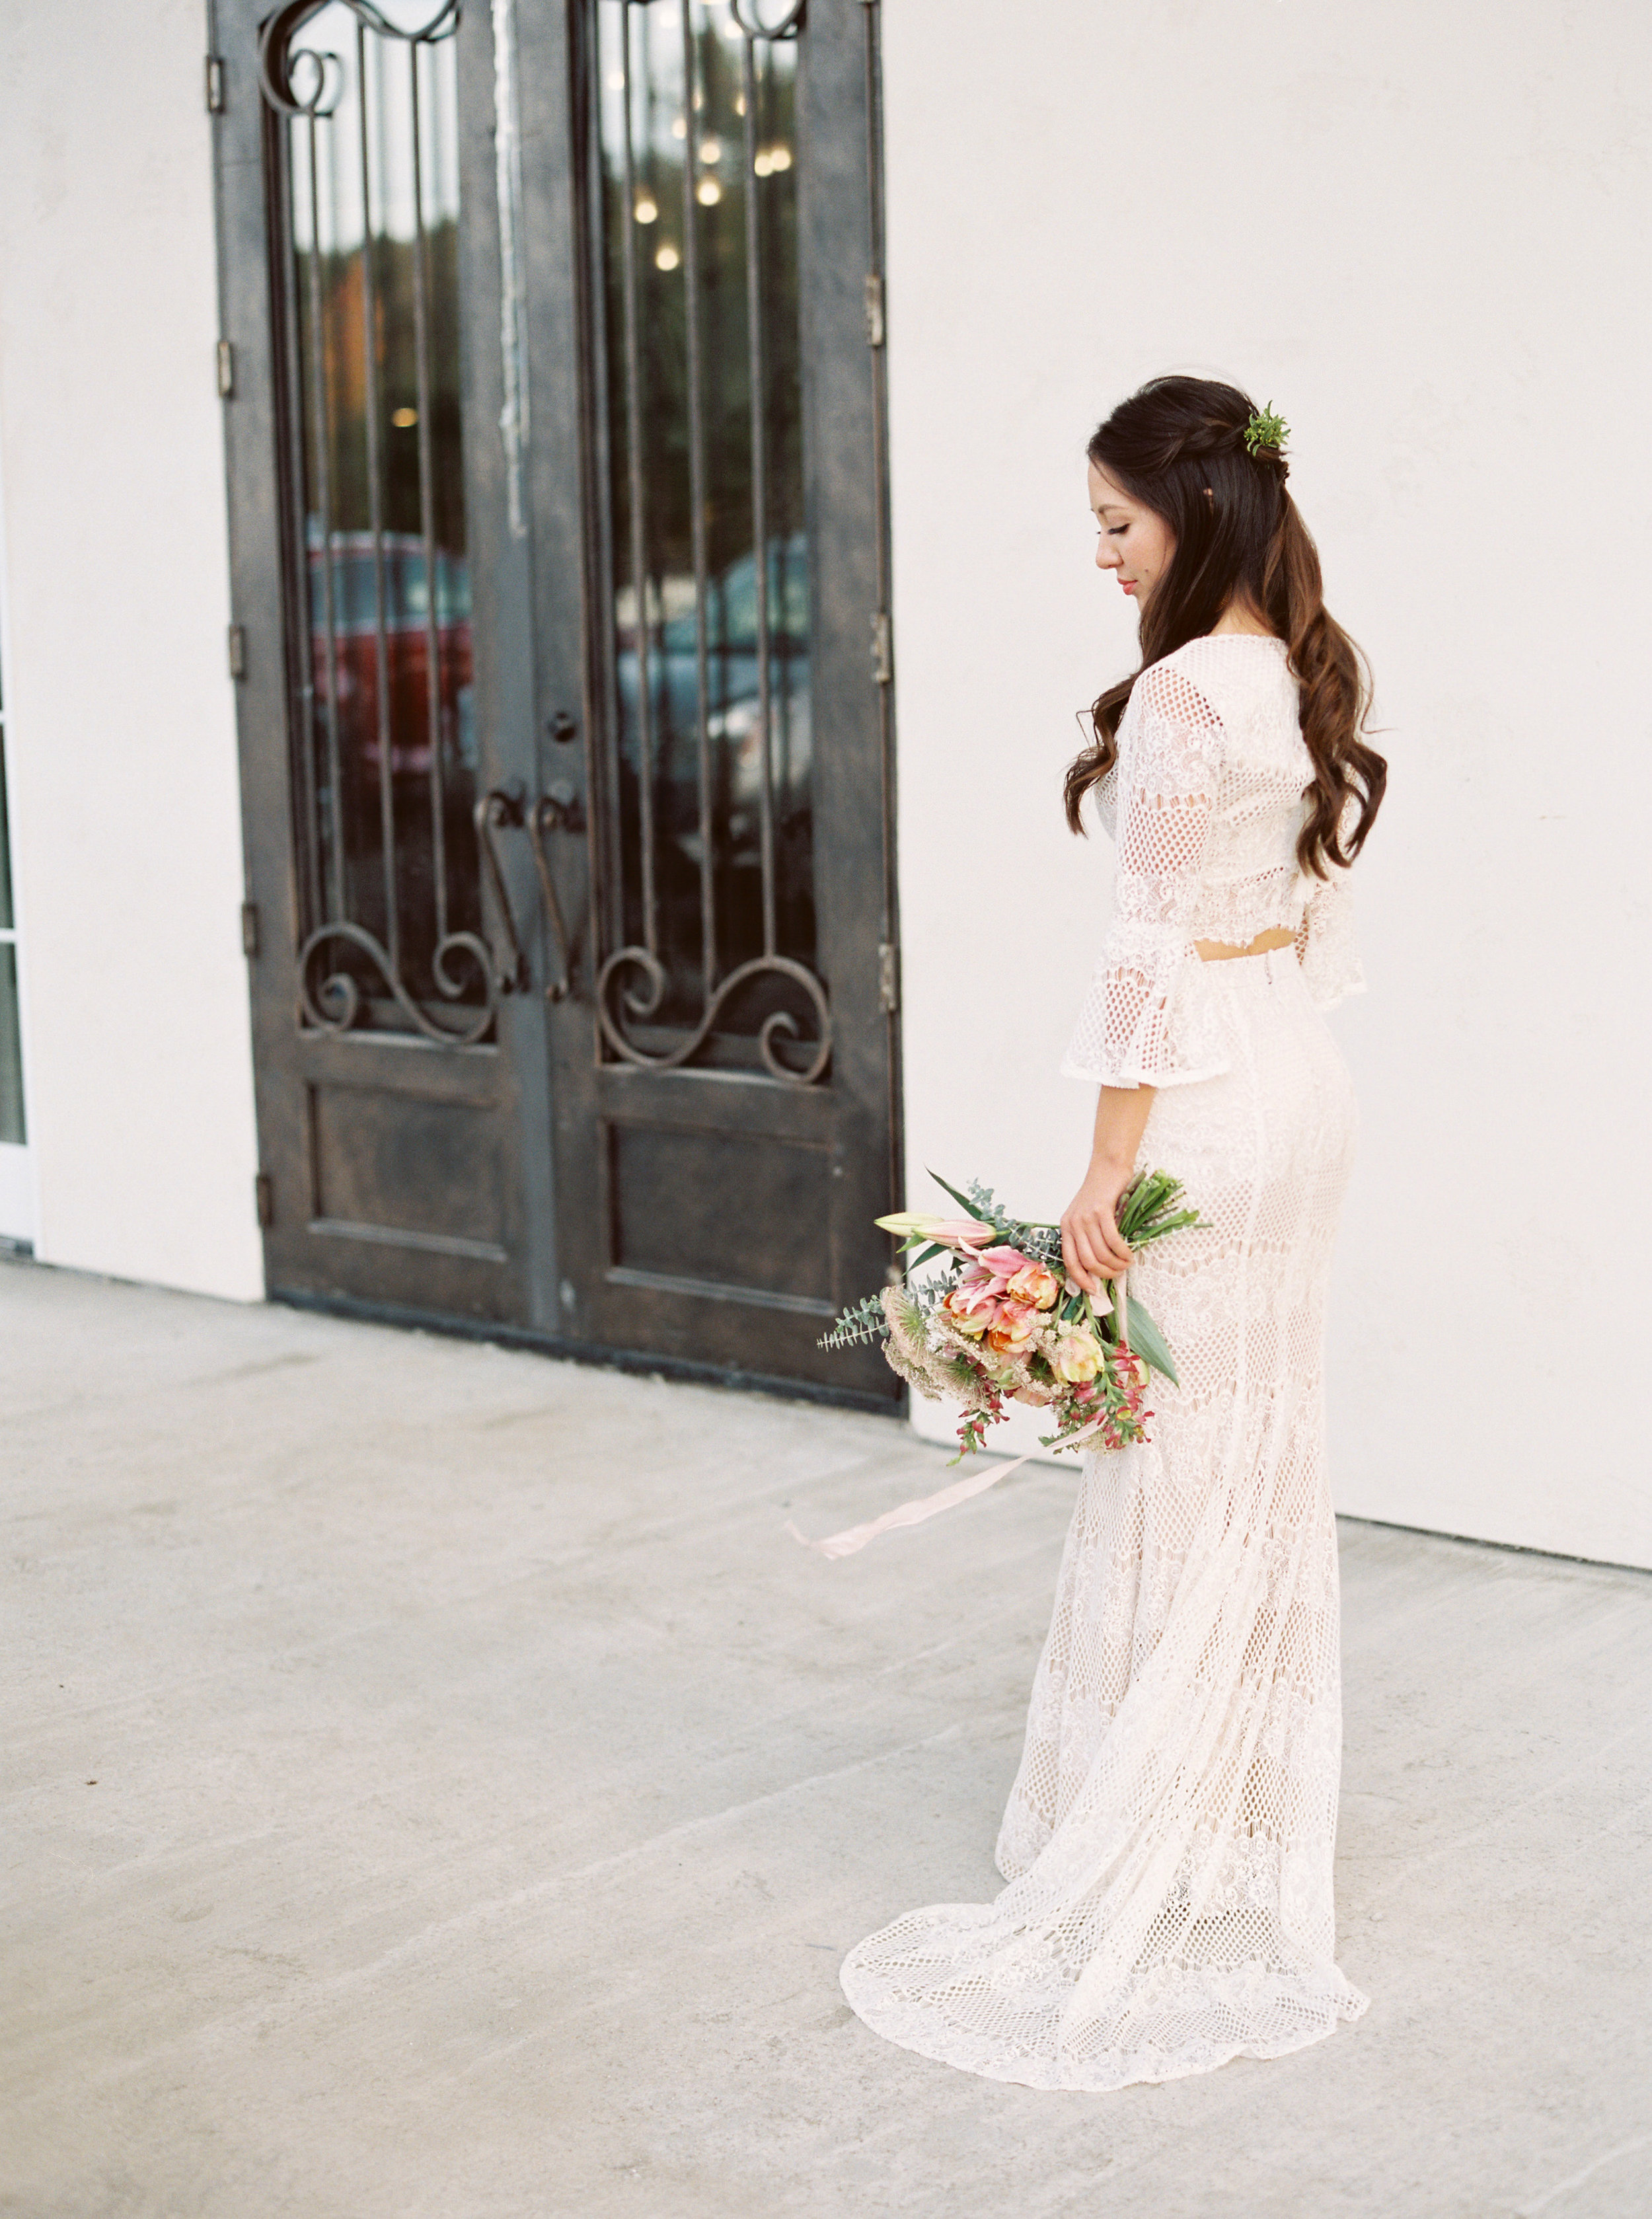 boho-inspired-wedding-at-casa-bella-in-sunol-california-27.jpg